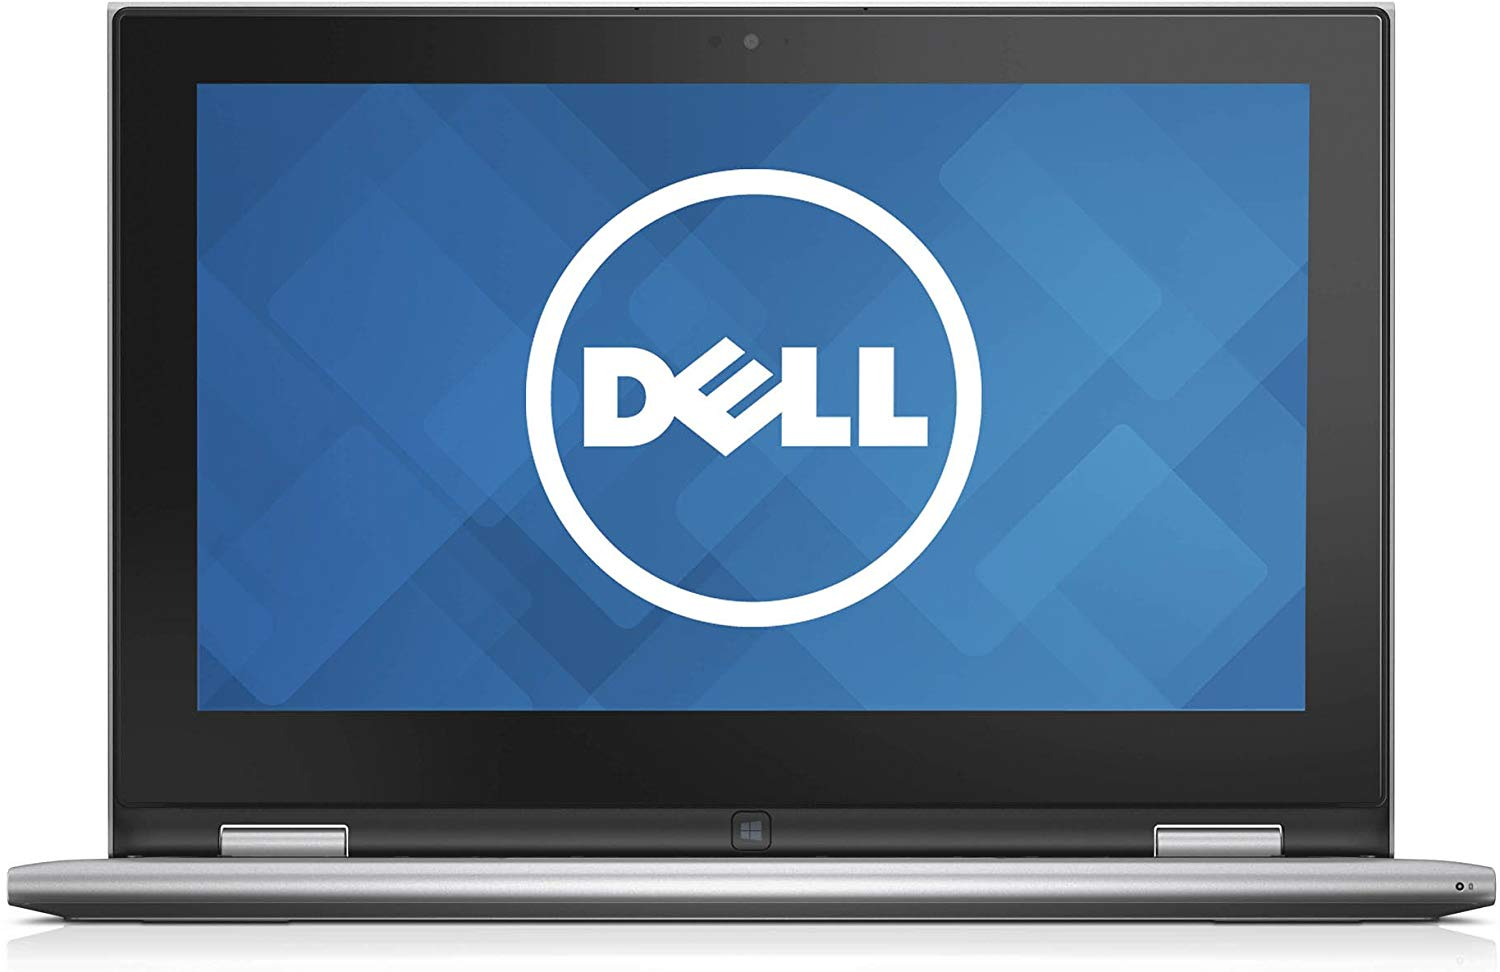 Dell Inspiron 11 3000 Series 11.6-Inch Convertible 2 in 1 Touchscreen Laptop (i3147-2500sLV) - Mini Notebooks